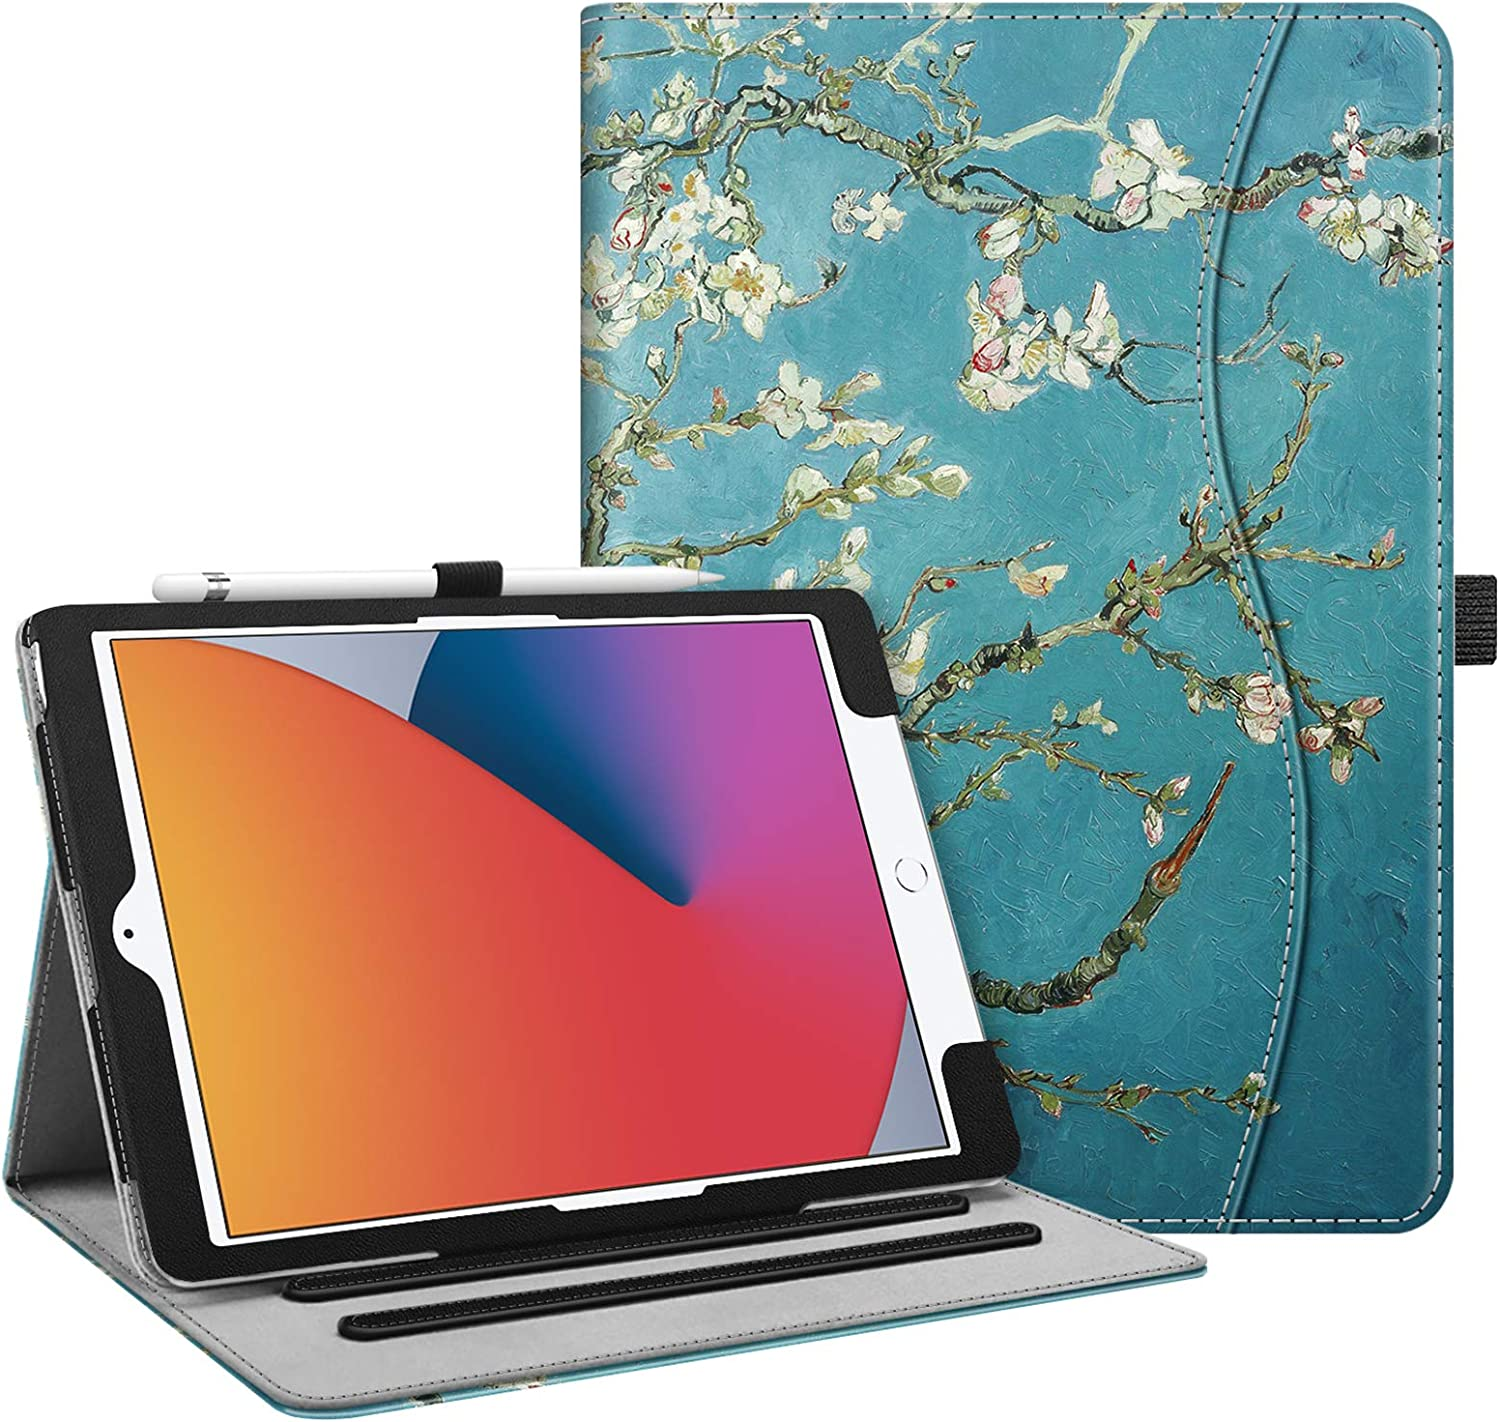 Fintie Case for New iPad 8th Gen (2020) / 7th Generation (2019) 10.2 Inch - [Corner Protection] Multi-Angle Viewing Folio Stand Cover with Pocket, Pencil Holder, Auto Wake/Sleep, Blossom